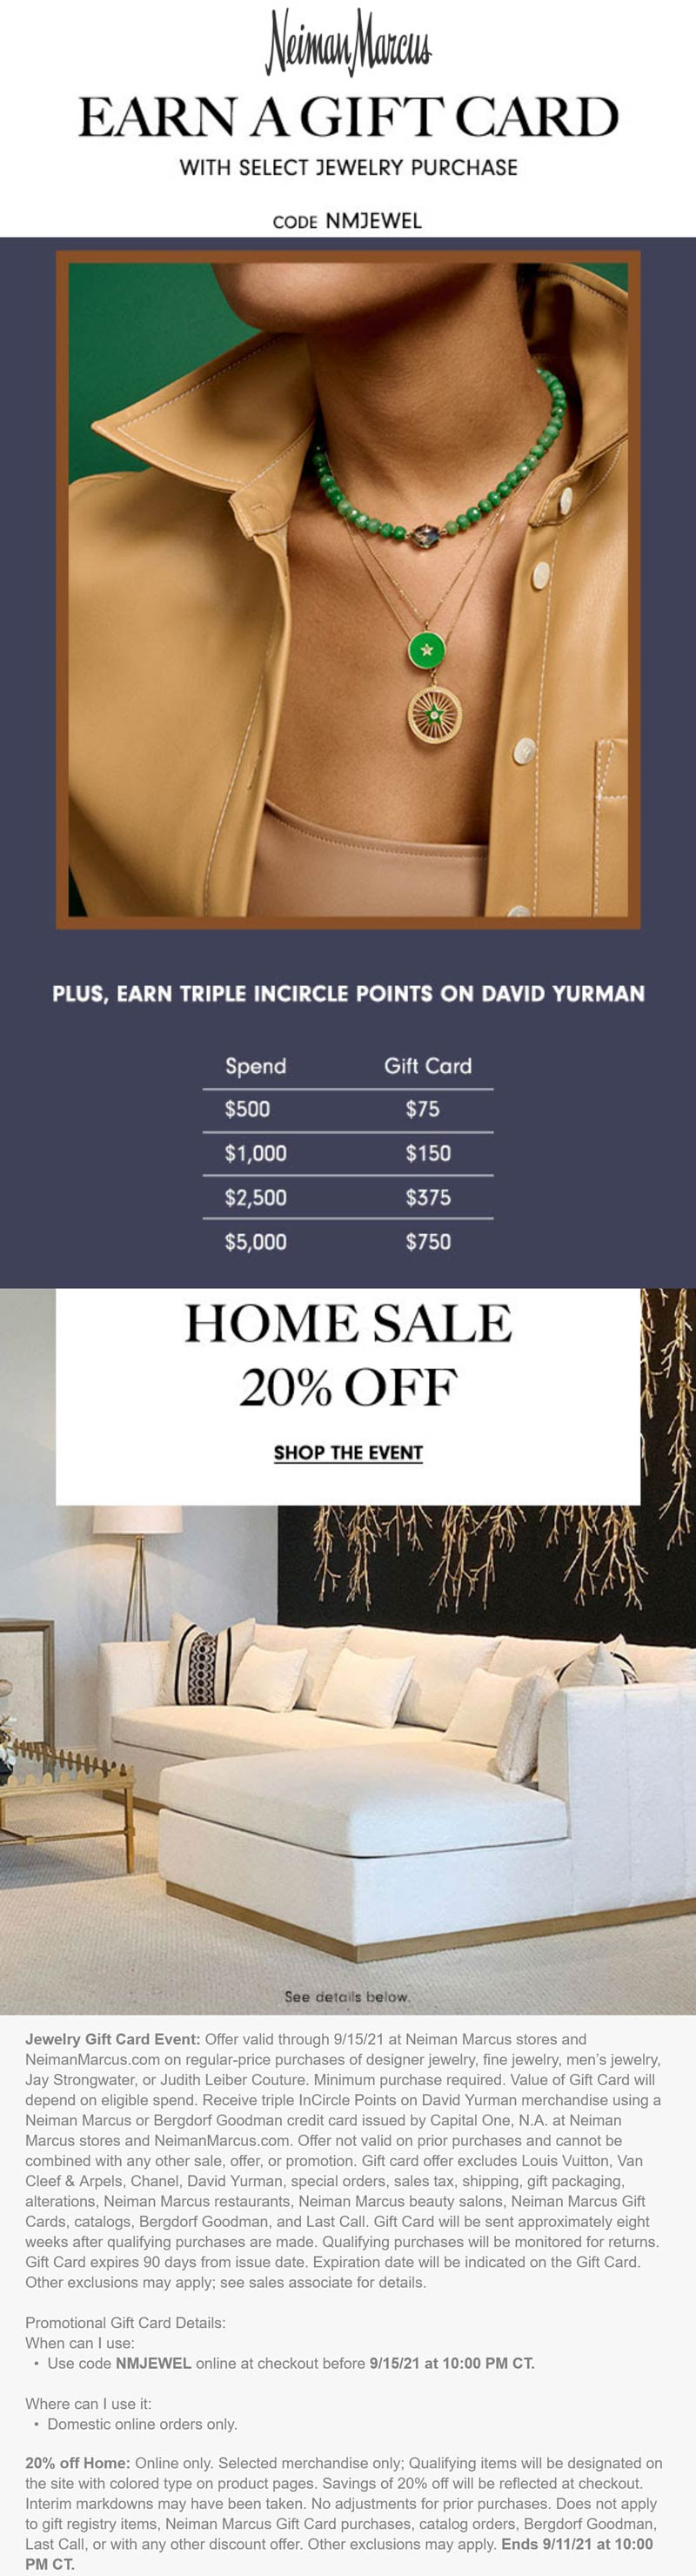 Neiman Marcus stores Coupon  $75-$750 card on $500+ jewelry at Neiman Marcus via promo code NMJEWEL #neimanmarcus